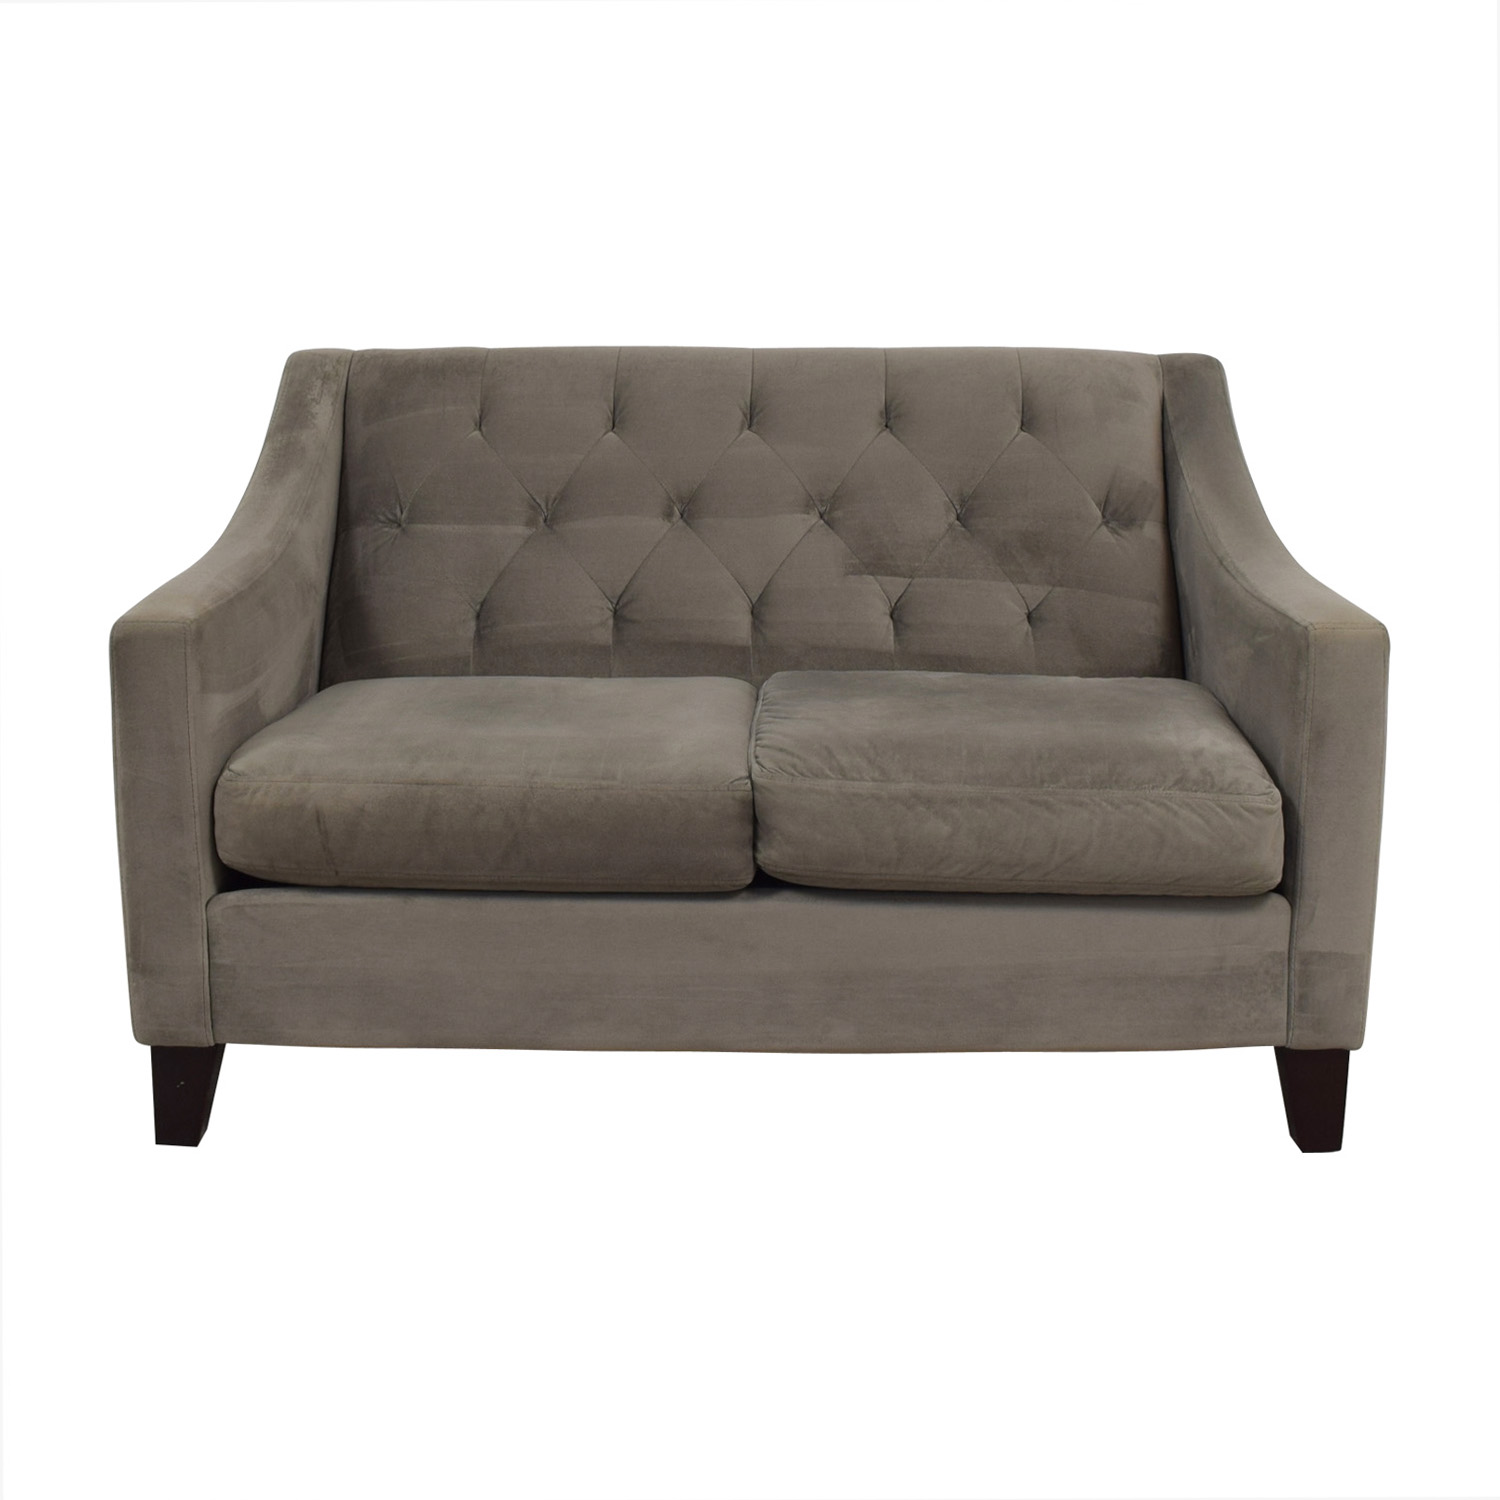 Max Home Max Home Grey Tufted Two-Cushion Love Seat dimensions